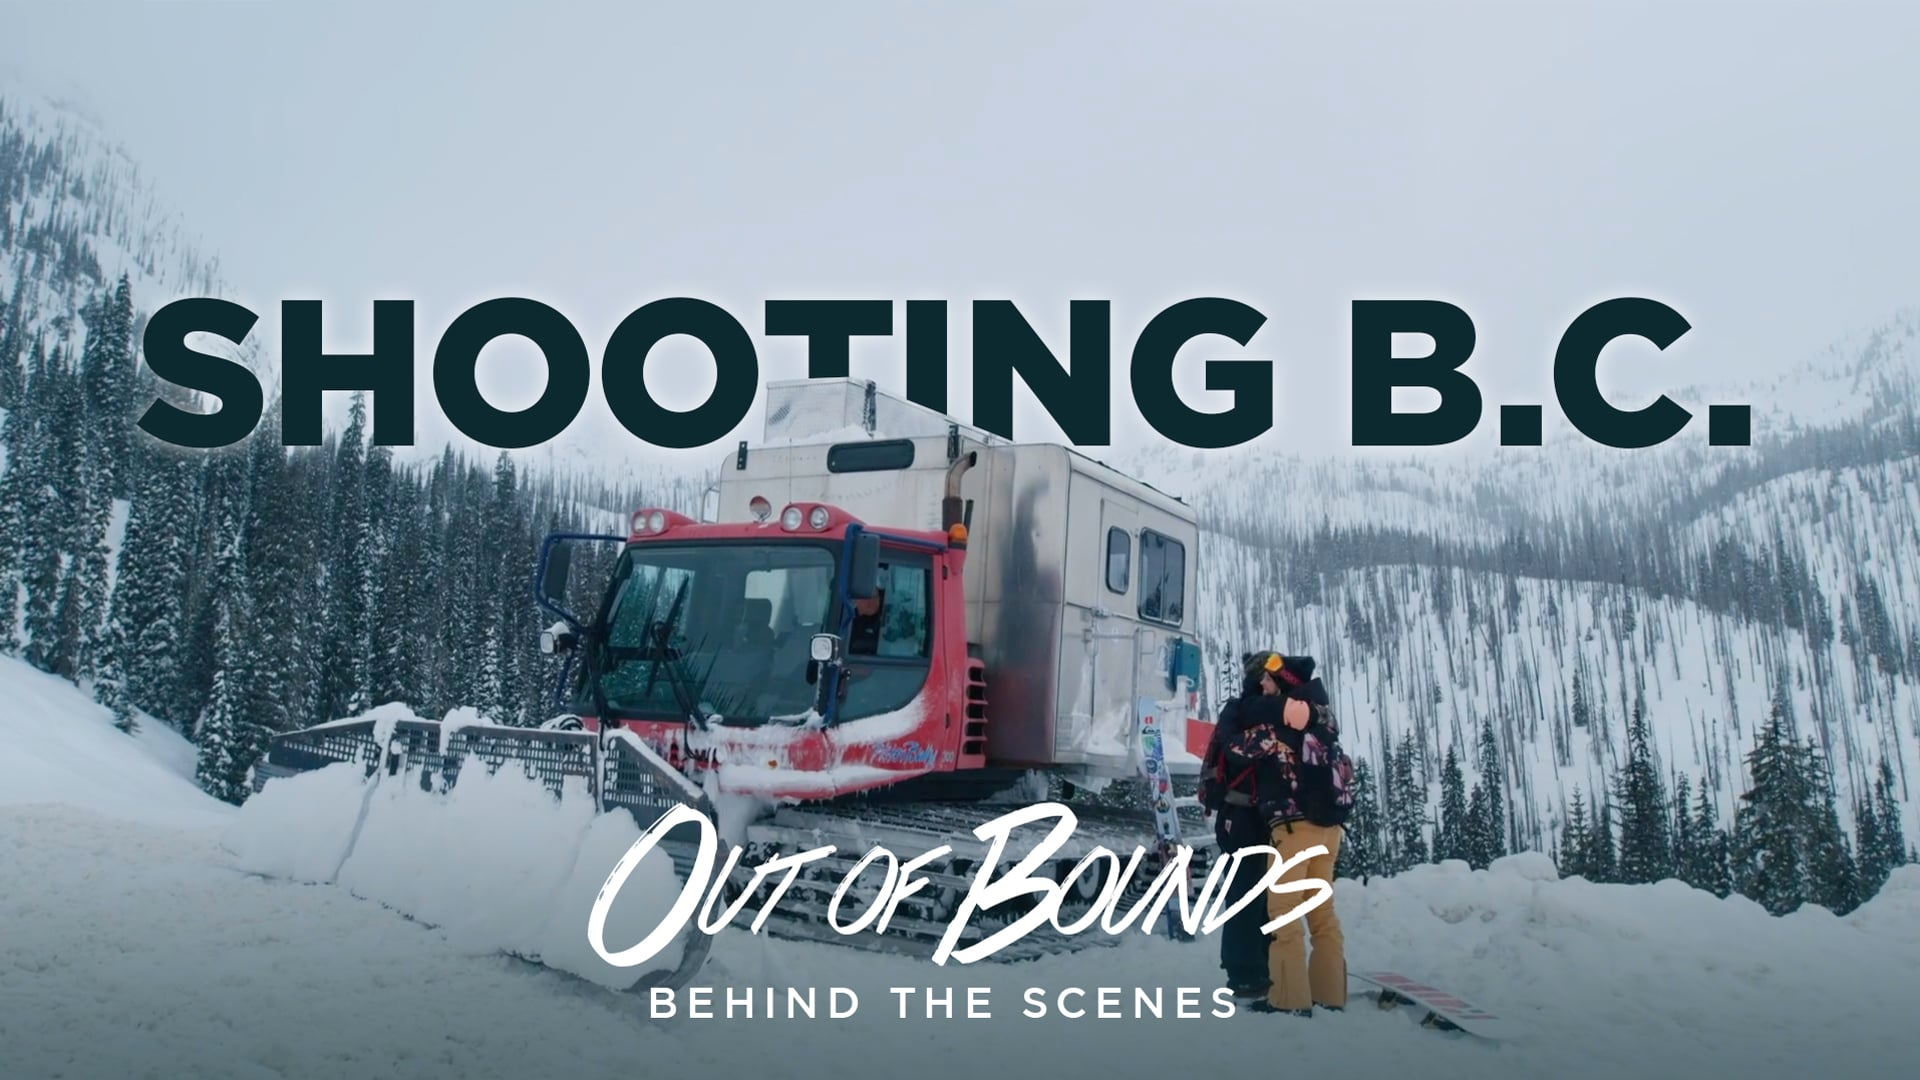 Out of Bounds - Behind the Scenes 9 - Shooting BC